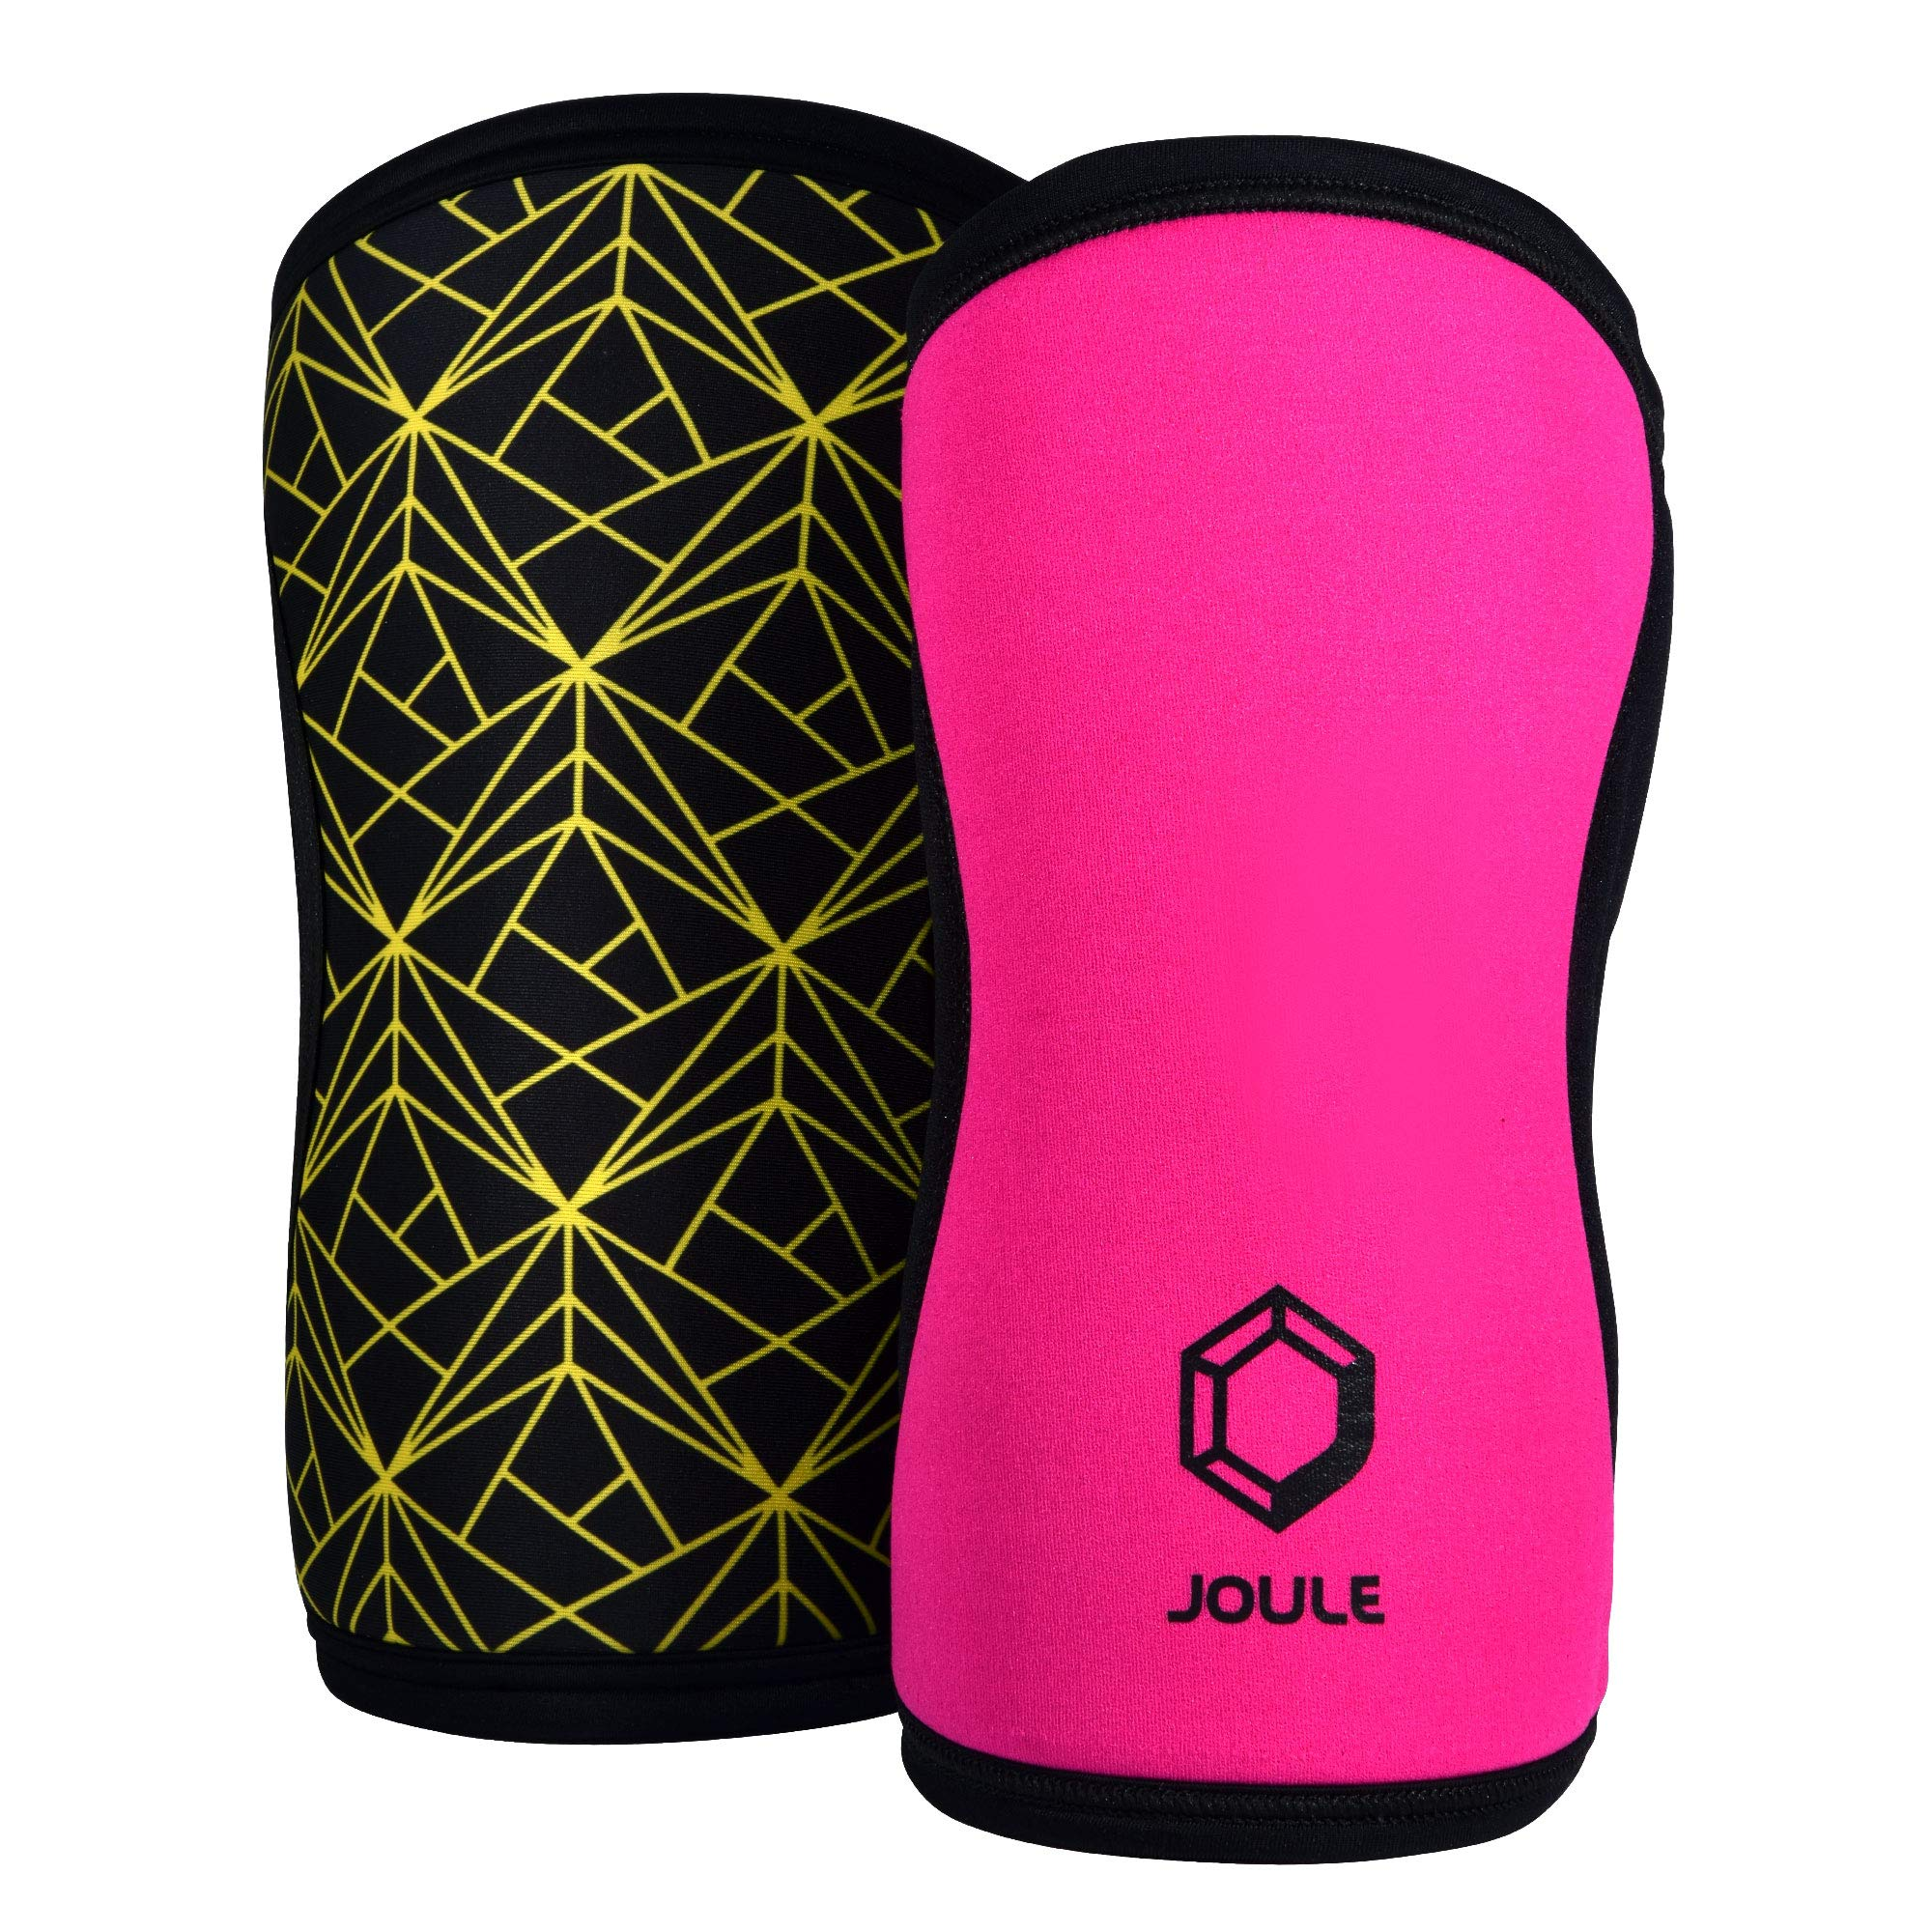 JOULE Active Reversible Knee Sleeve - 7mm Pair of 2 Neoprene Sleeves with Compression for Weightlifting, Powerlifting, and Crossfit - (Pink/Yellow, Small)